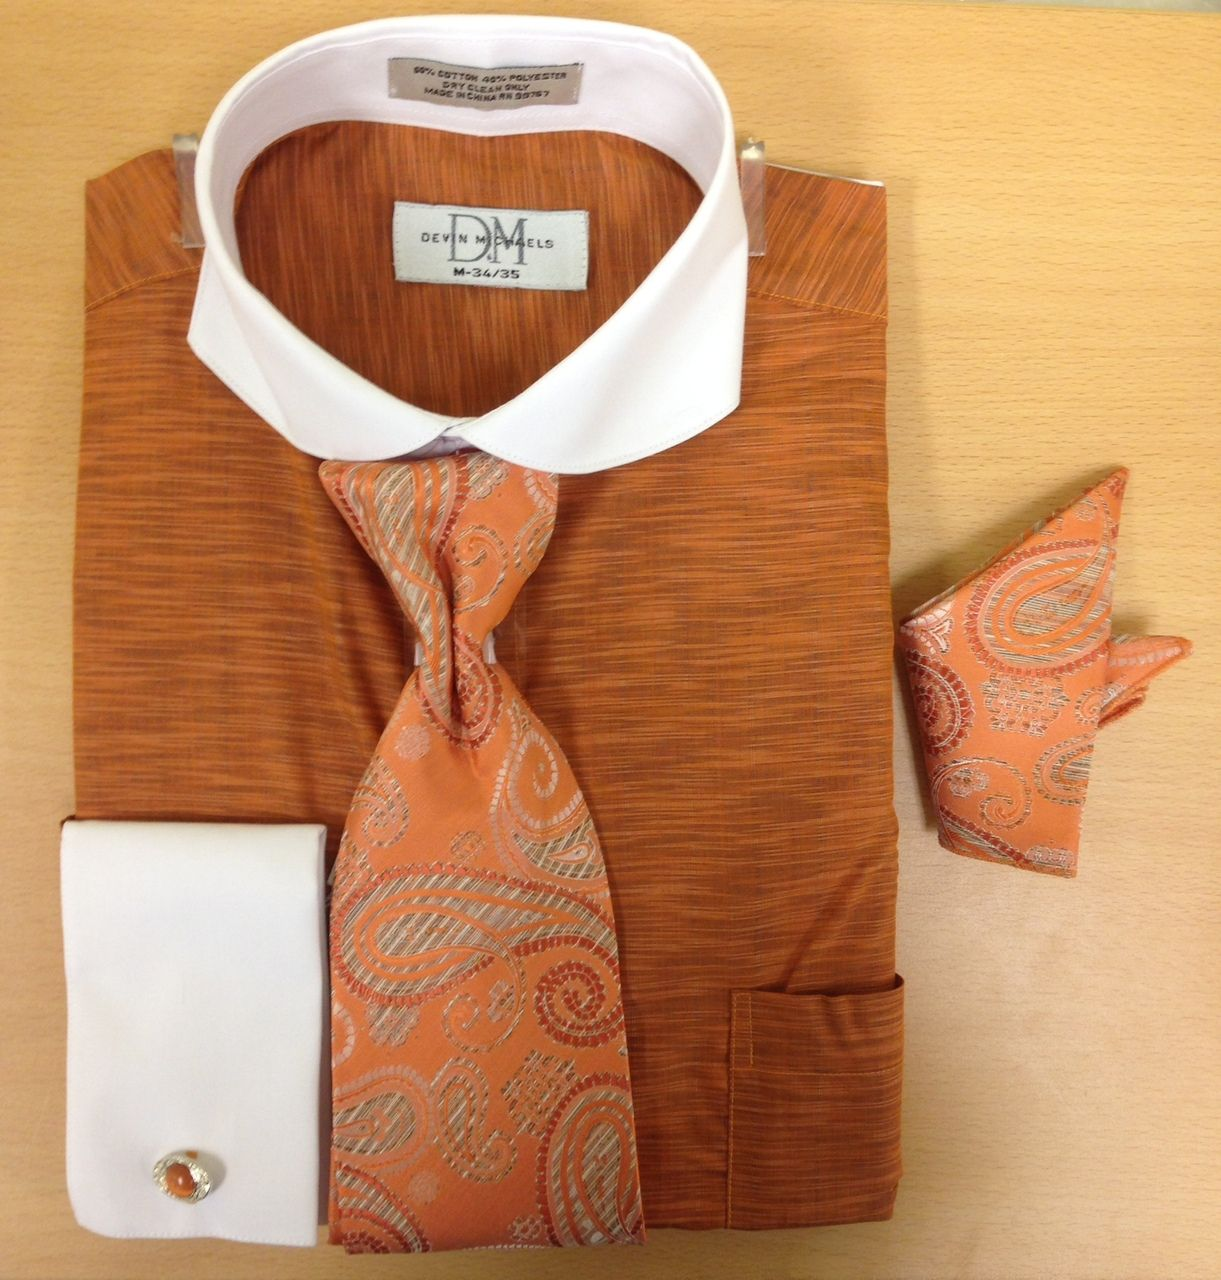 Men's Fashion Light Zigzag Pattern Cufflink Dress Shirt Set - Orange/Cognac